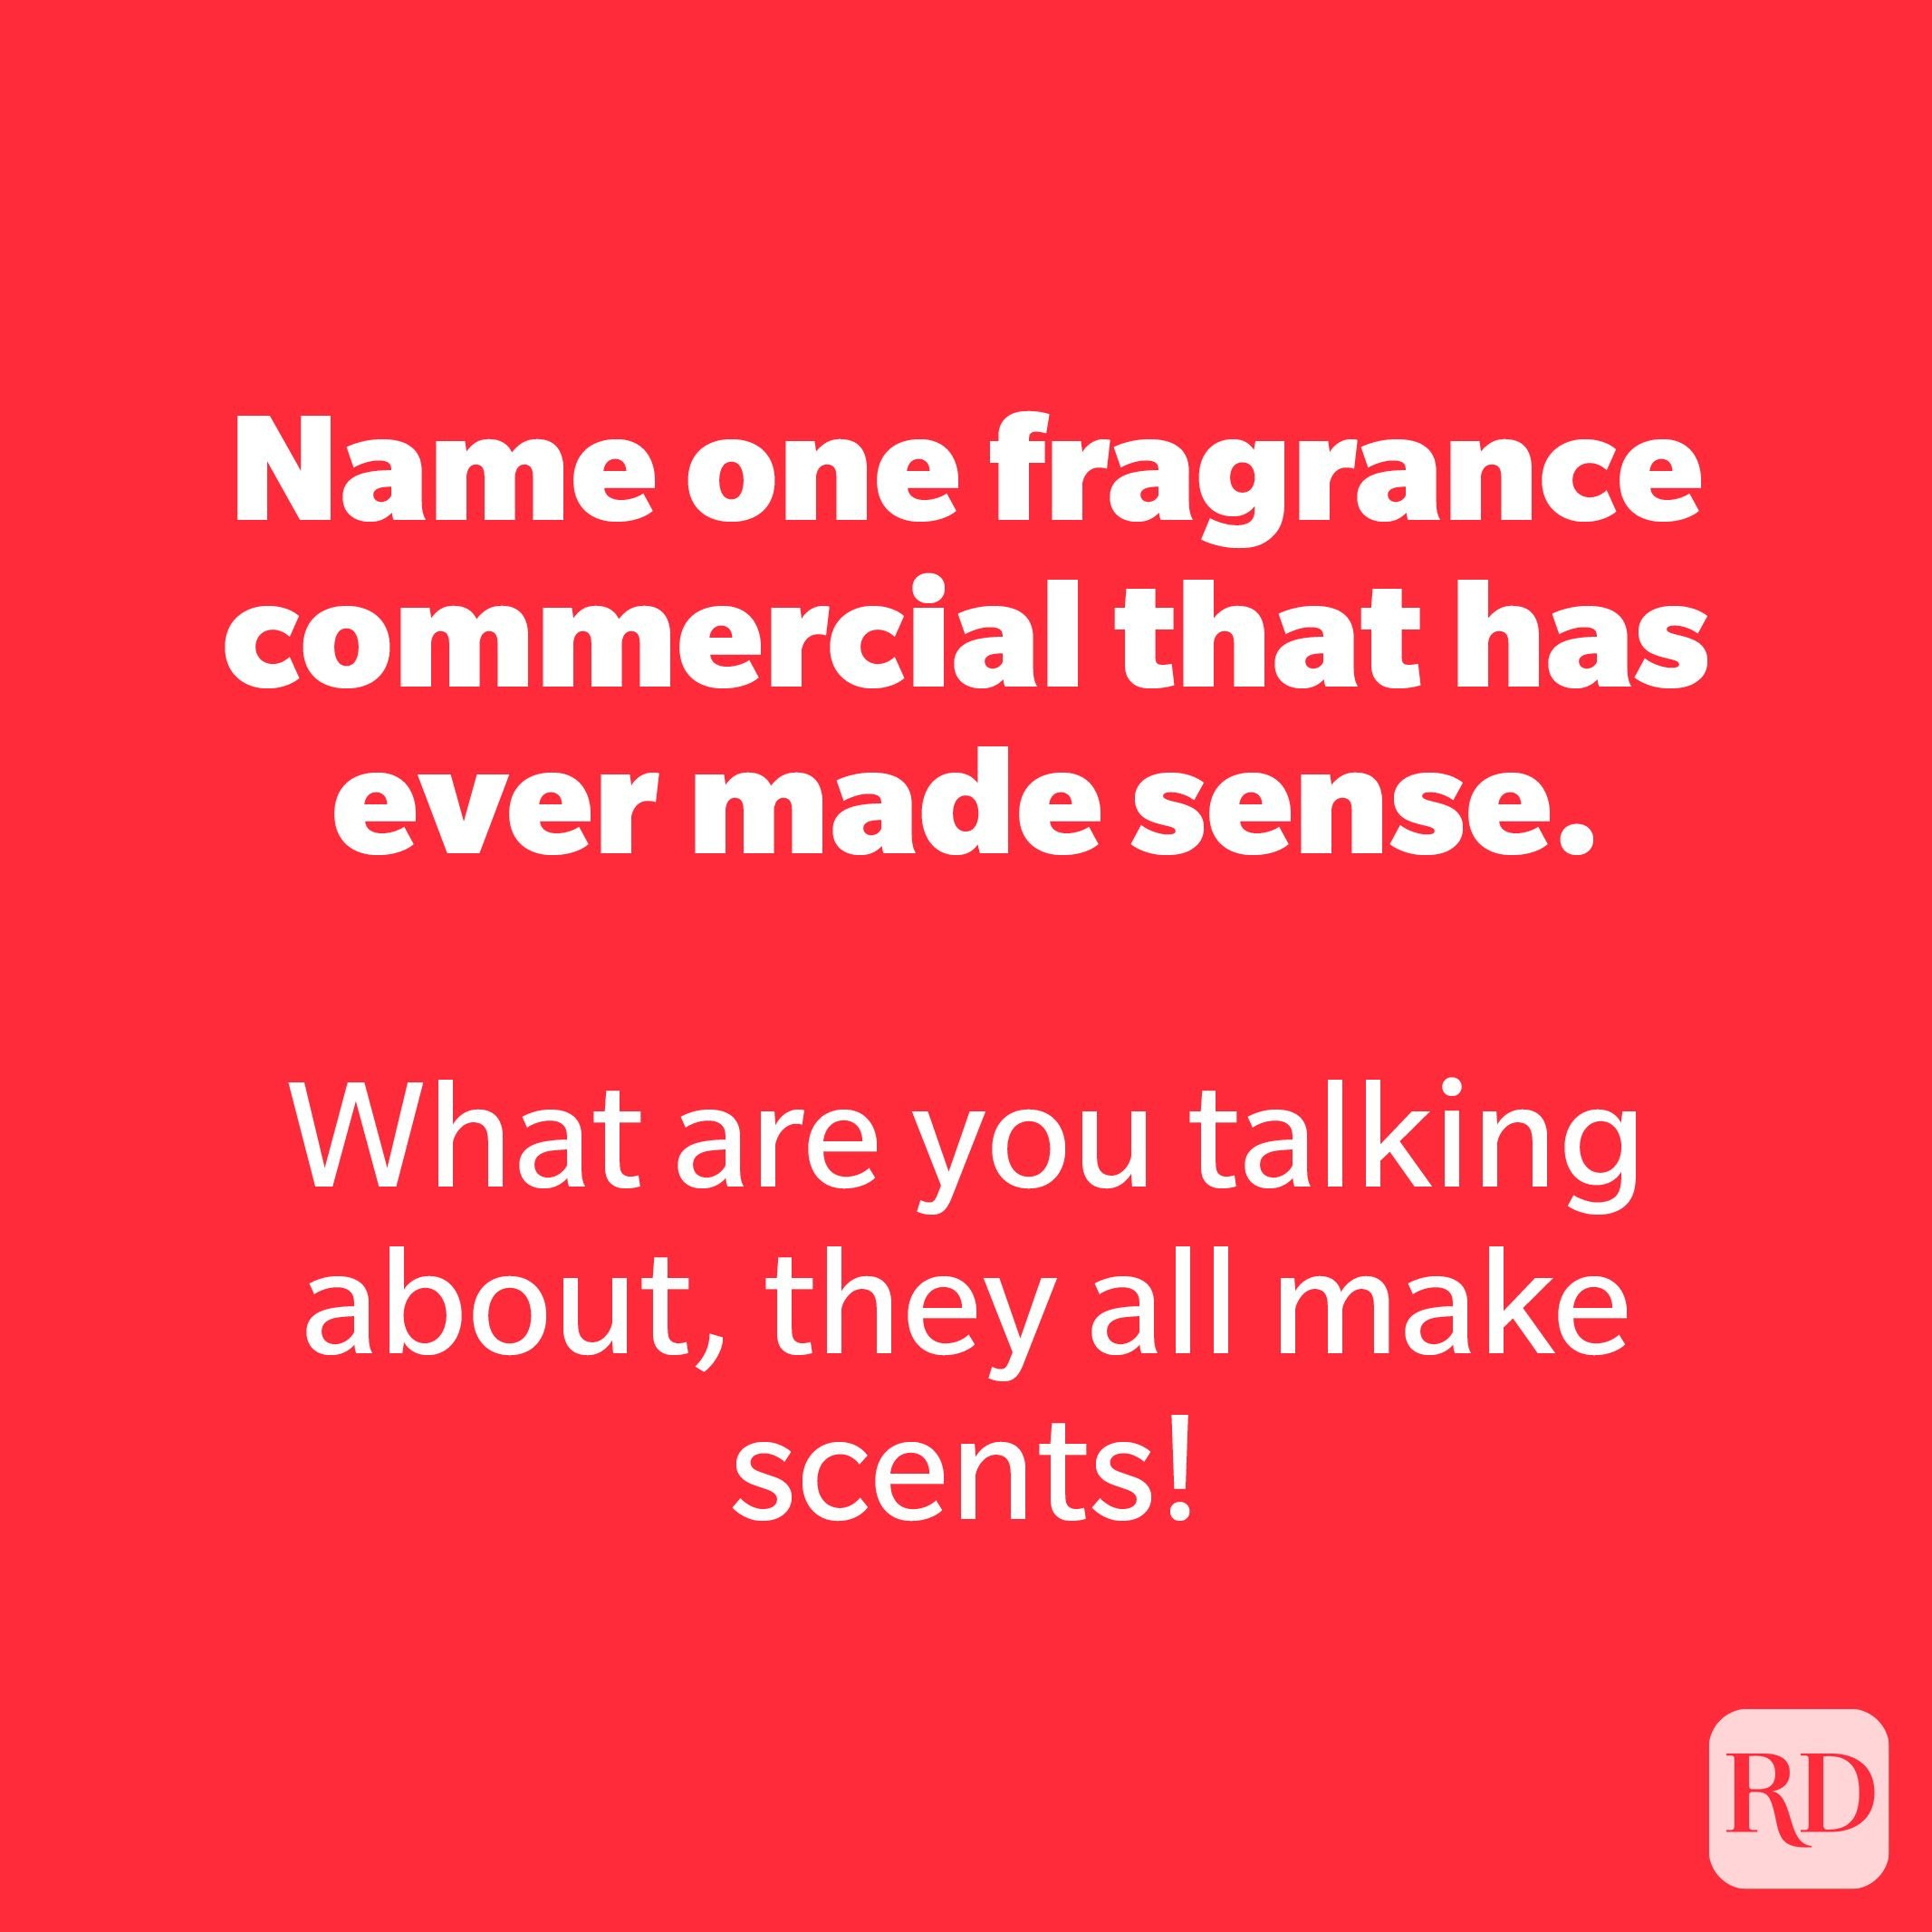 Name one fragrance commercial that has ever made sense.